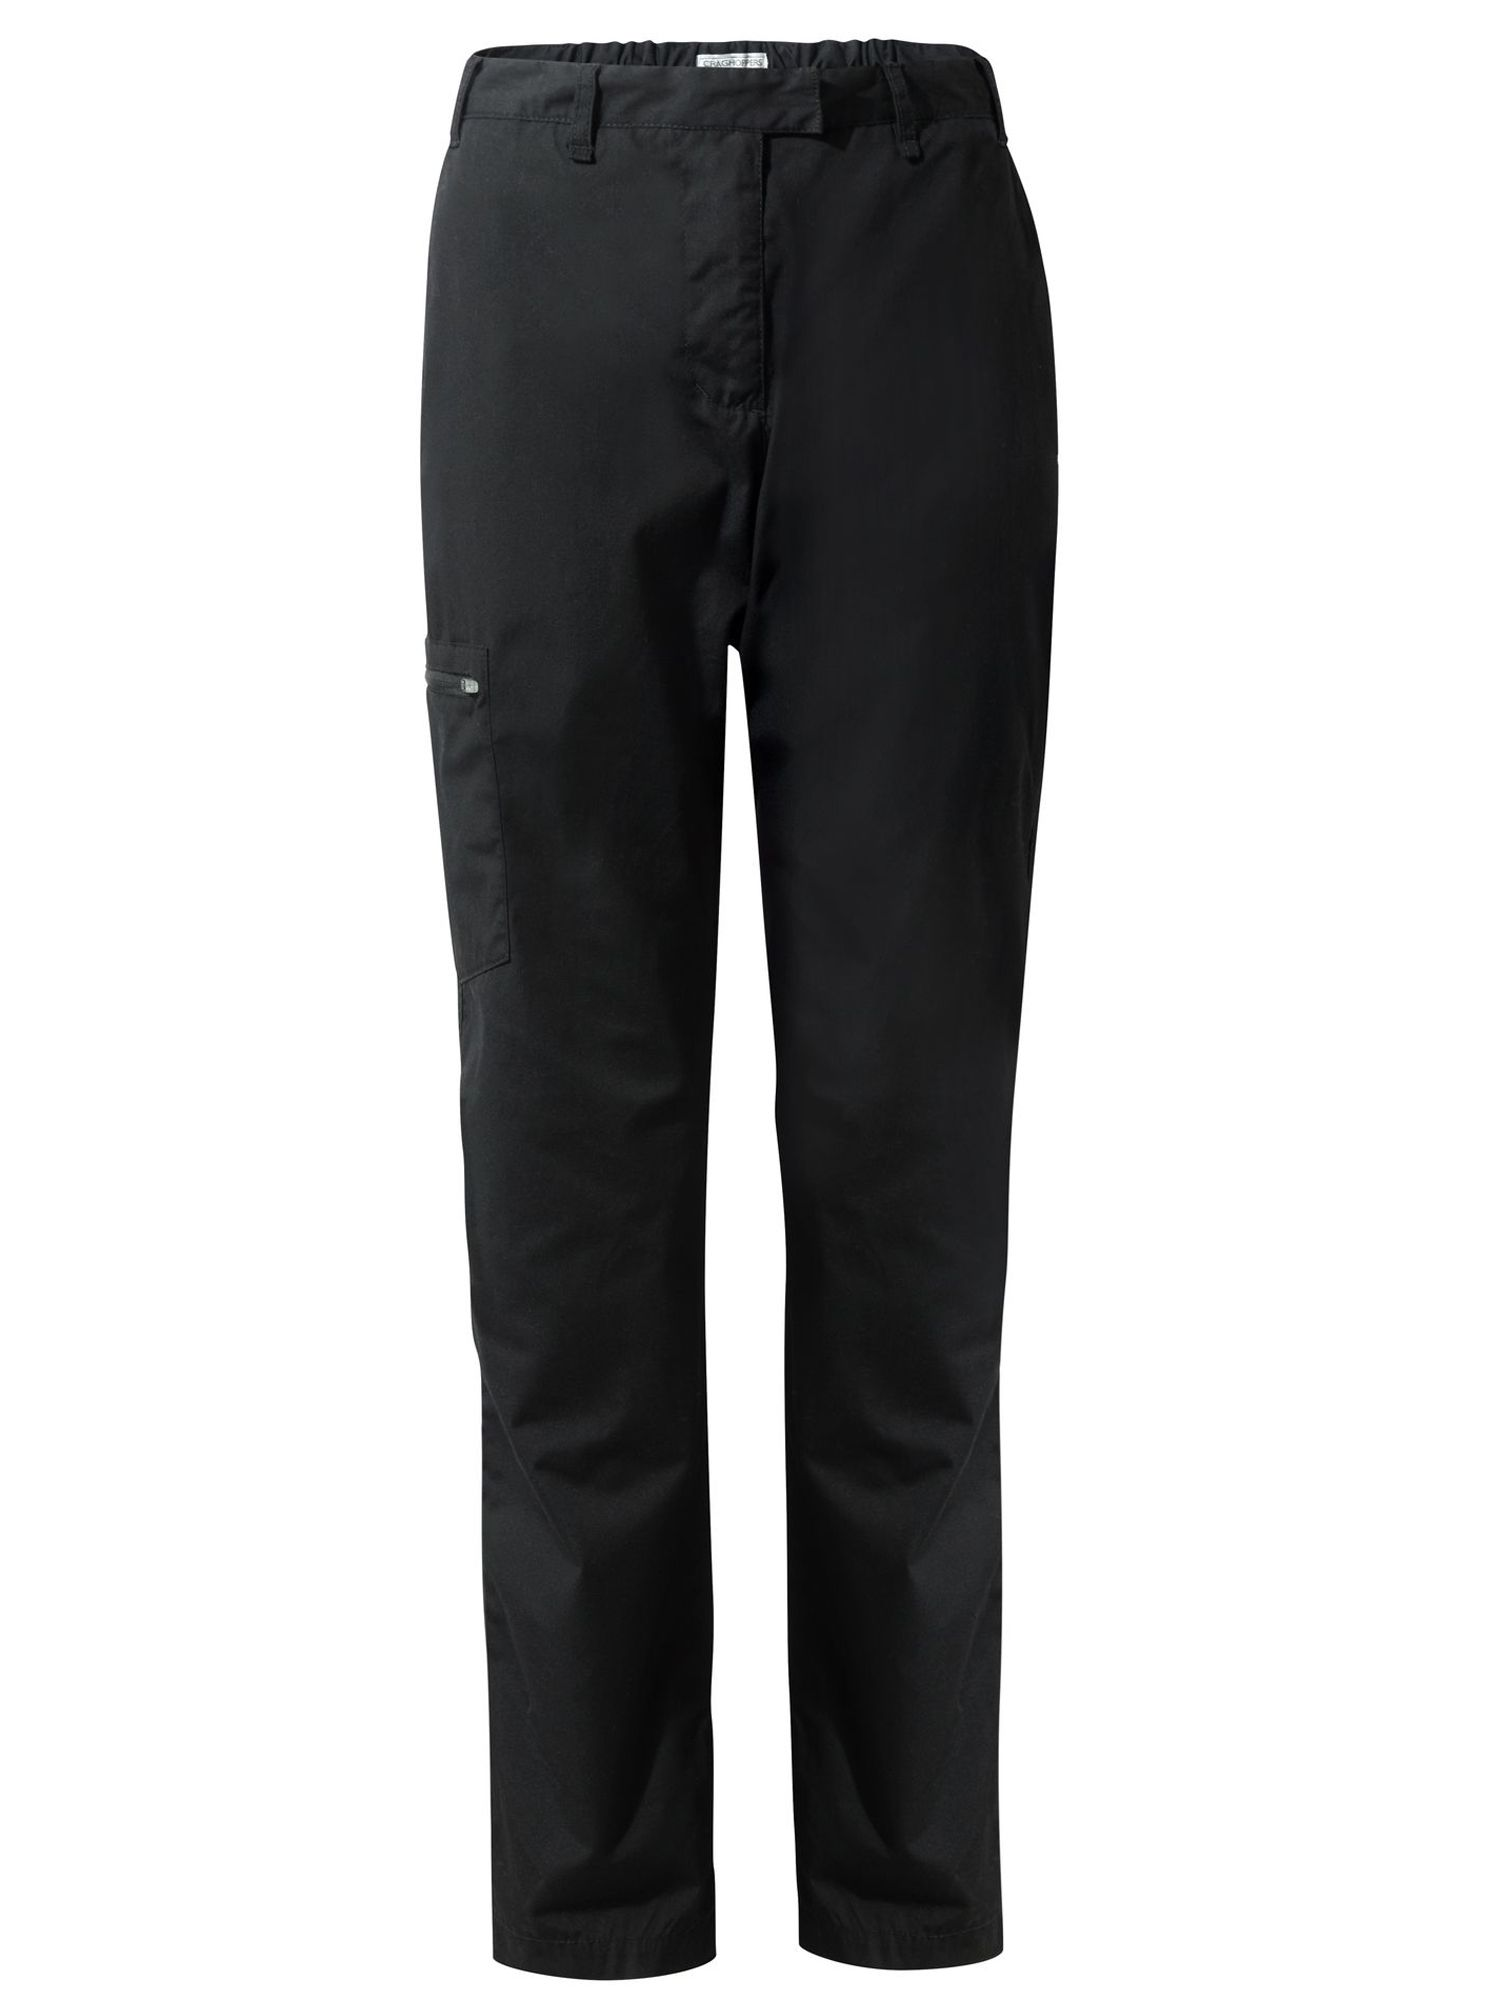 Craghoppers Classic Kiwi ll Trousers, Black